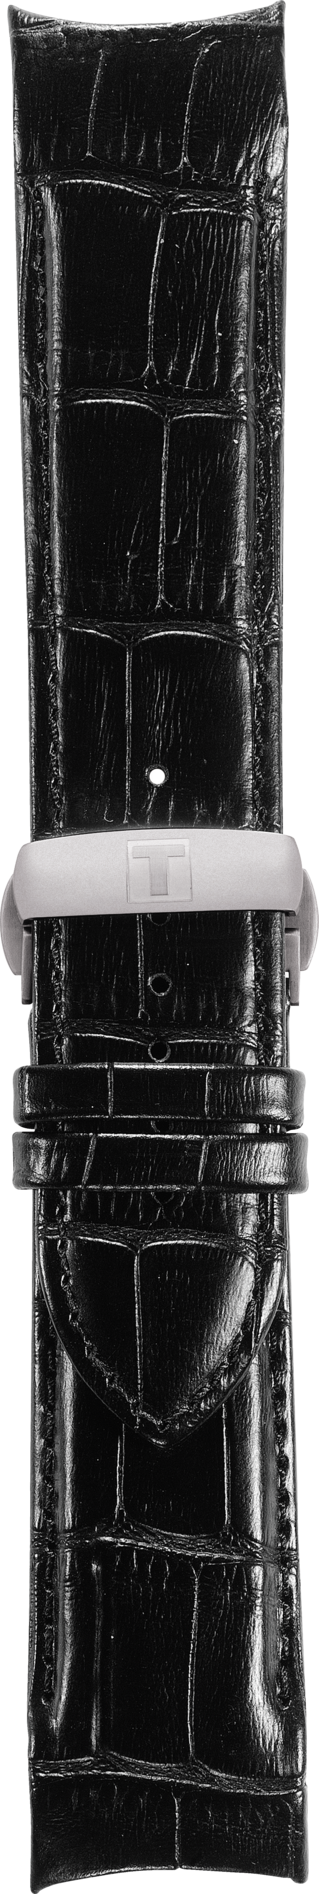 Tissot Couturier 24mm (Longer Size) Black Leather Watch Band